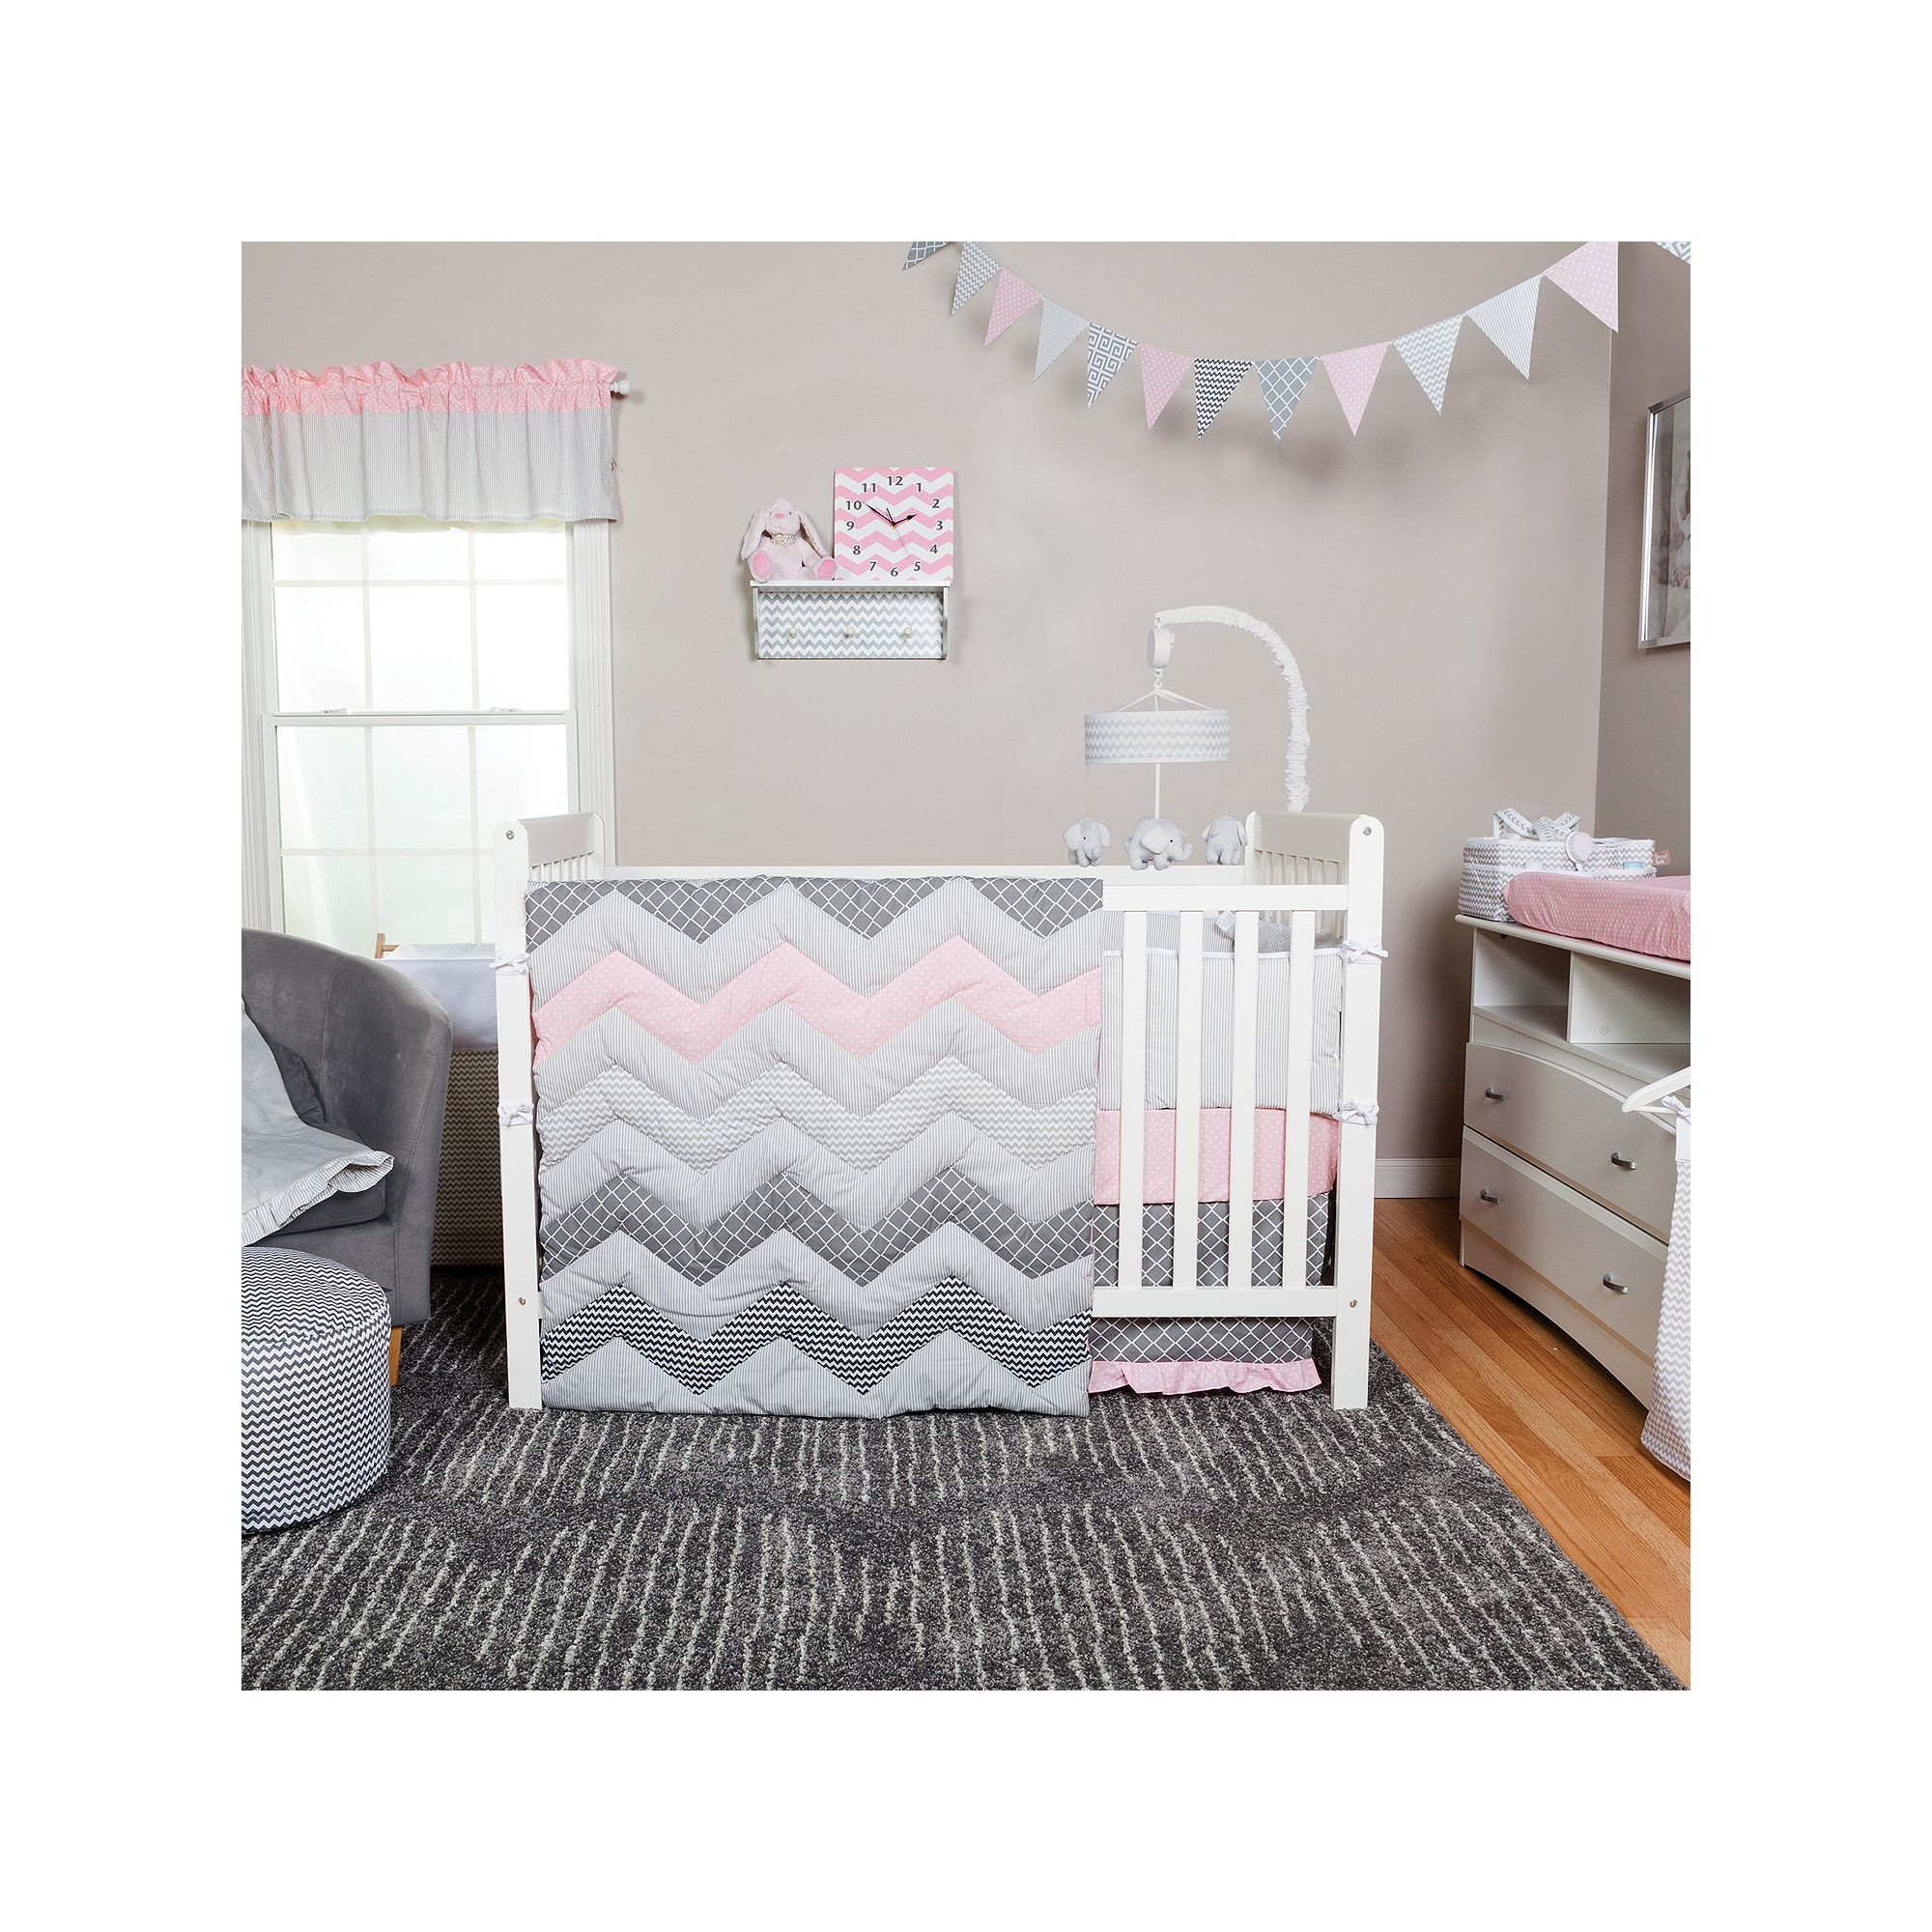 Harriet Bee Beavers Chevron Nursery 6 Piece Crib Bedding Set